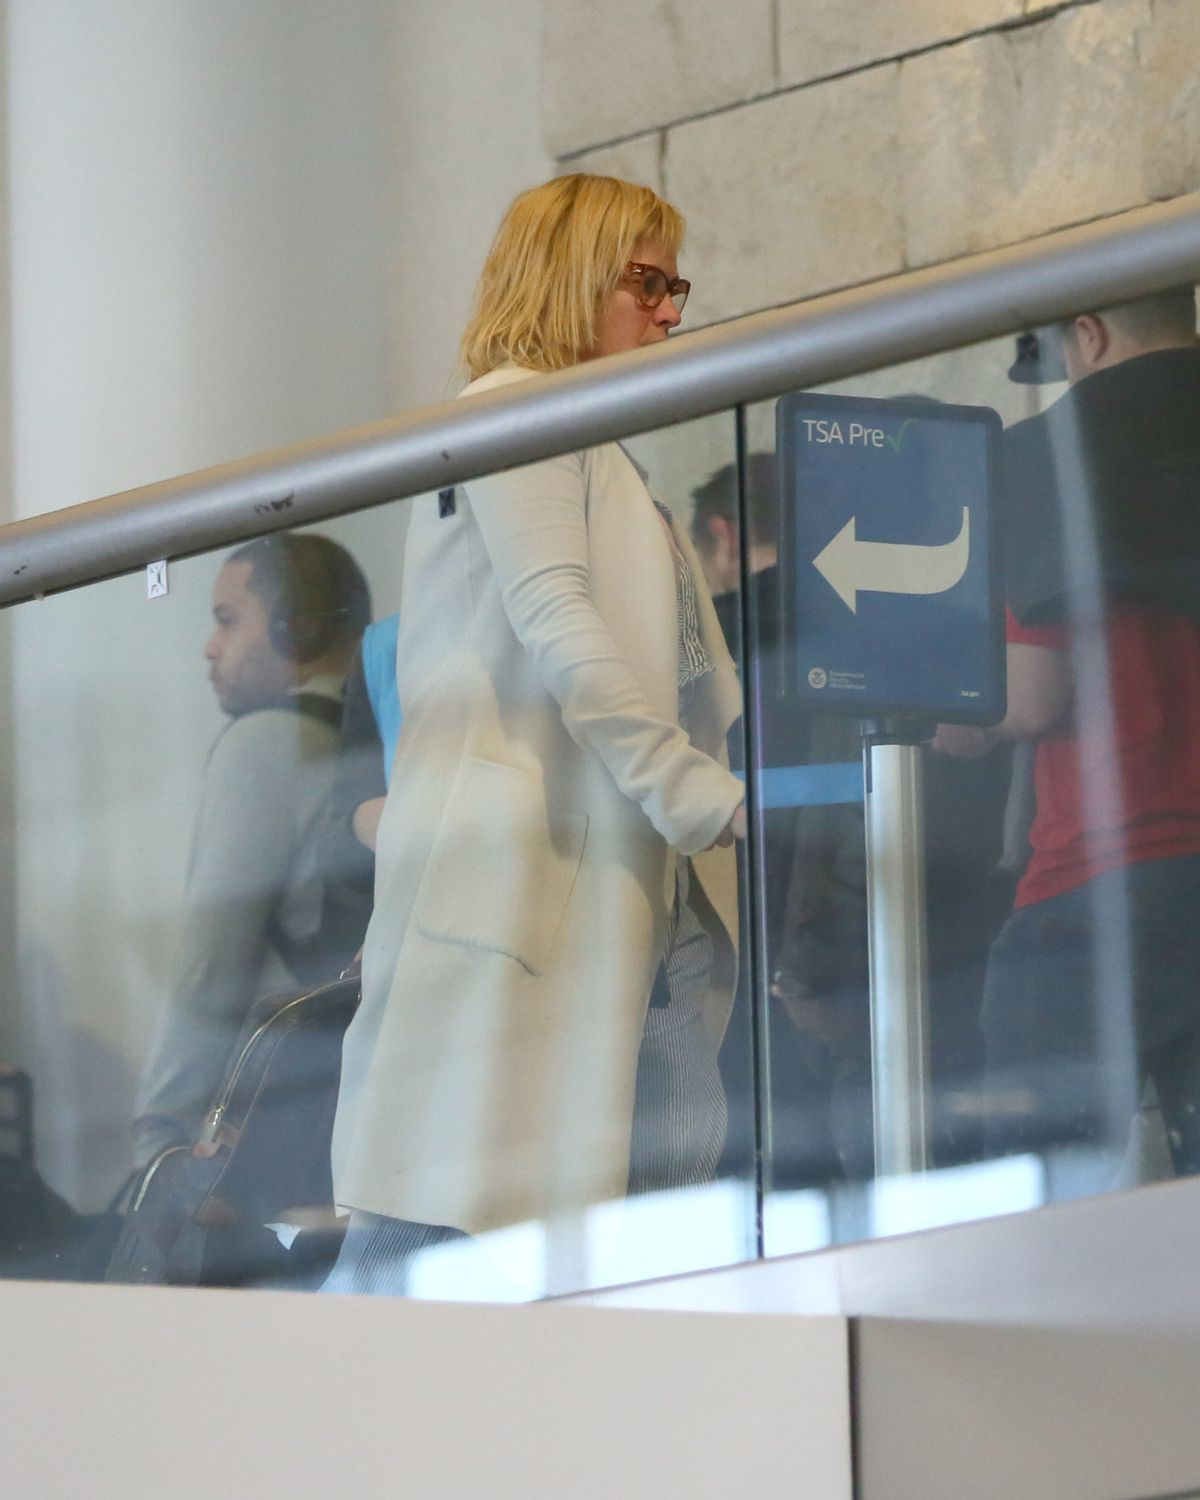 PATRICIA ARQUETTE at LAX Airport in Los Angeles 01/16/2017